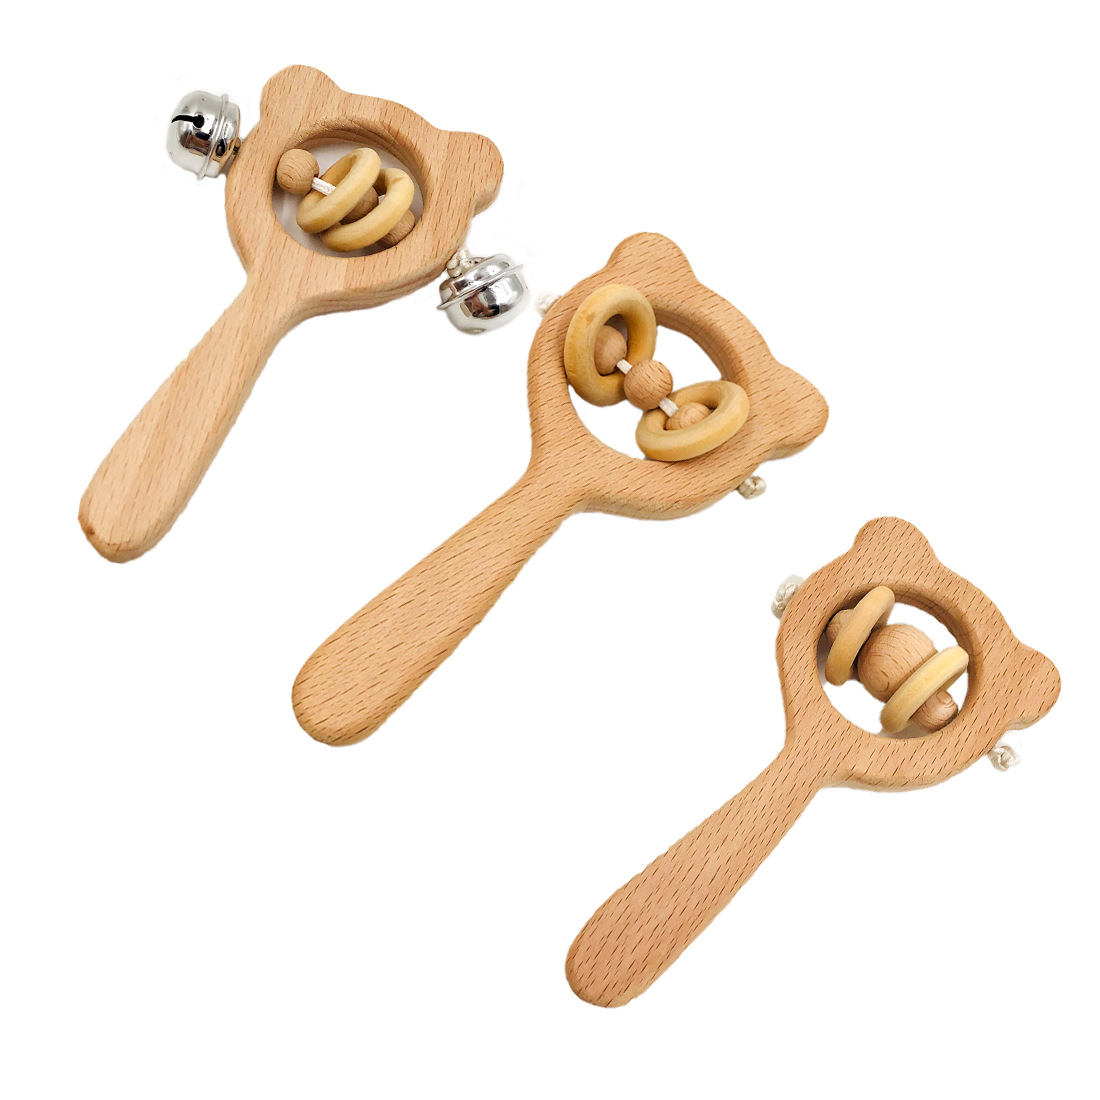 2019 New Baby Toys Beech Wood Bear Hand Teething Wooden Ring Can Chew Beads Baby Rattles Play Gym Montessori Stroller Toys